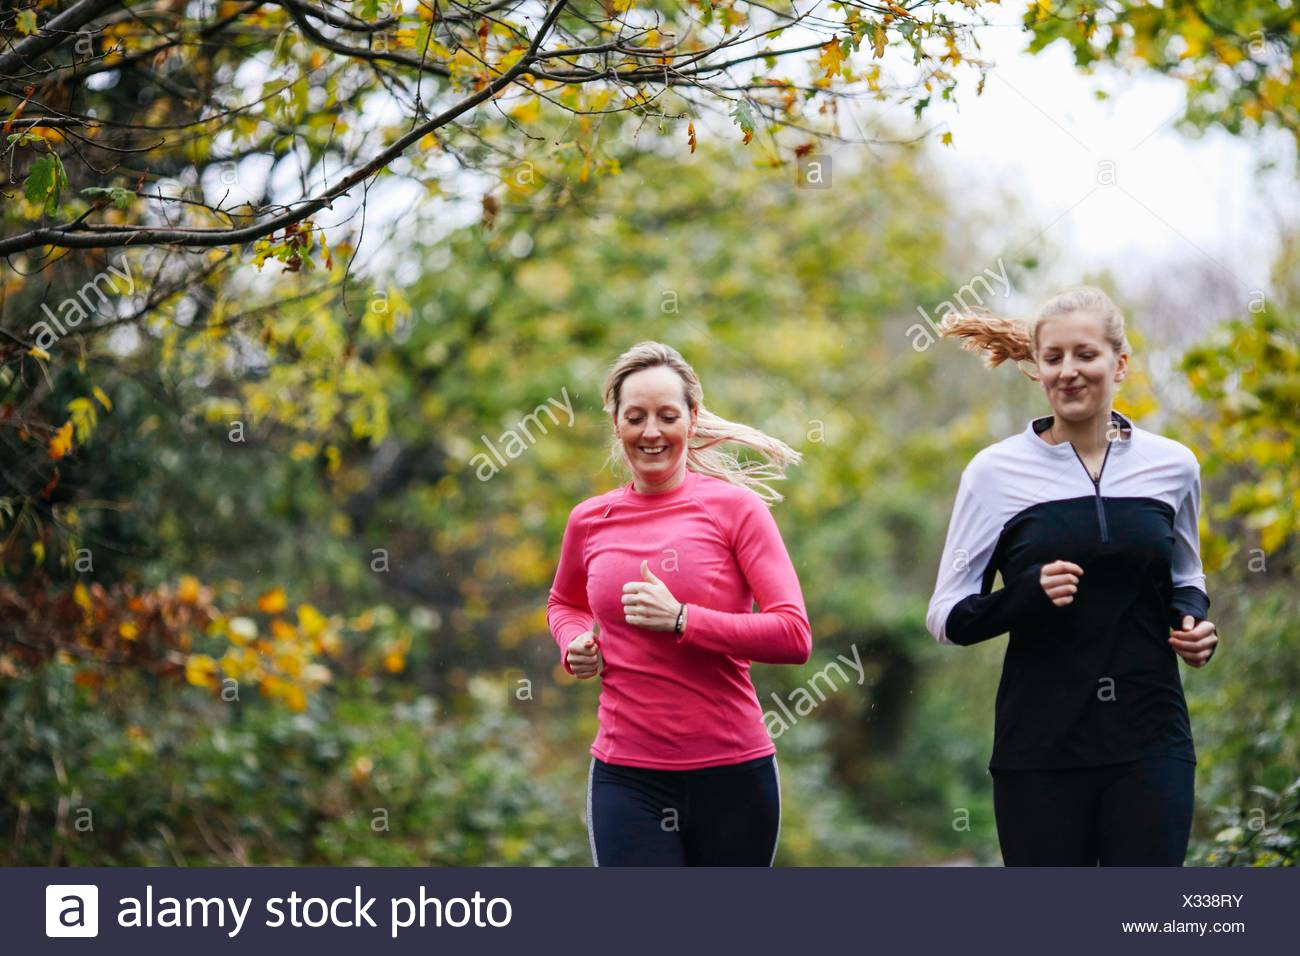 Man and Woman running in park Photo Stock